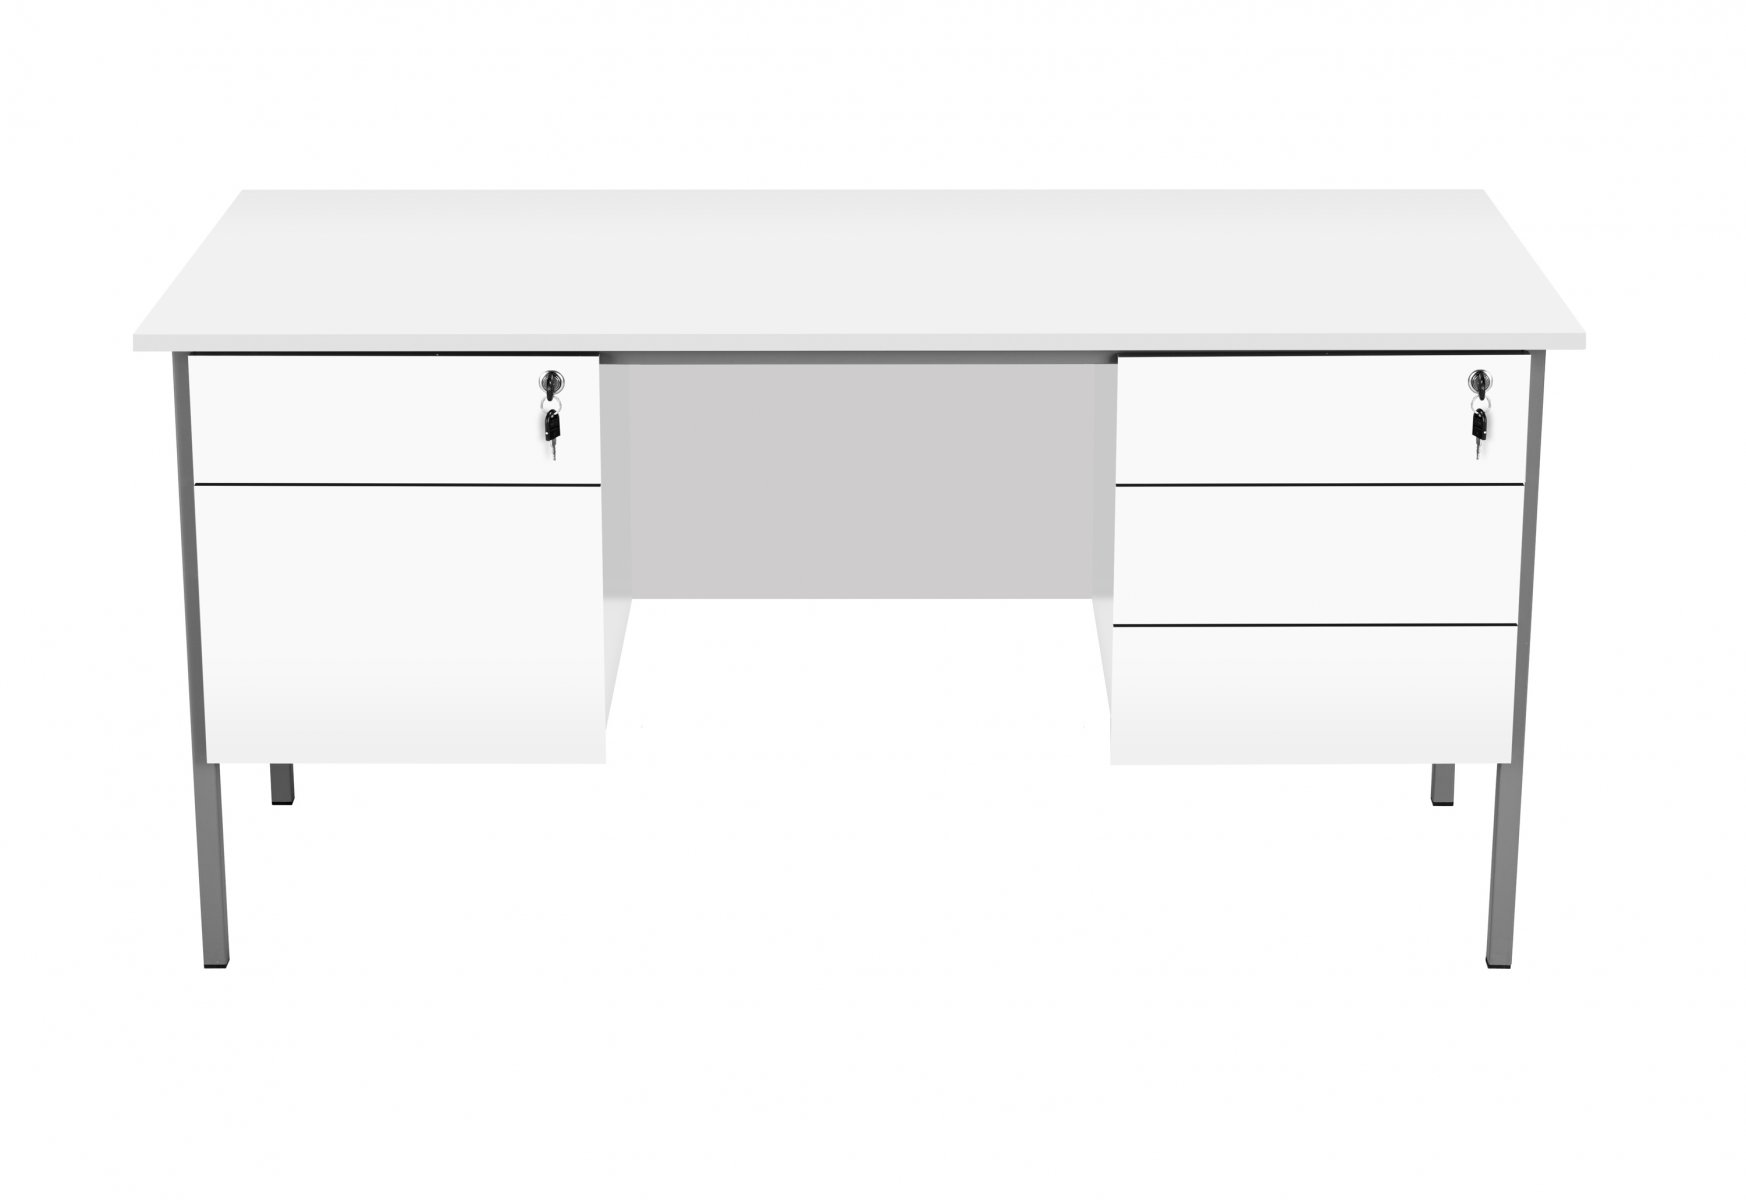 Eco 18 Rectangular 150 Desk with Double 2 and 3 Drawer Pedestals - White